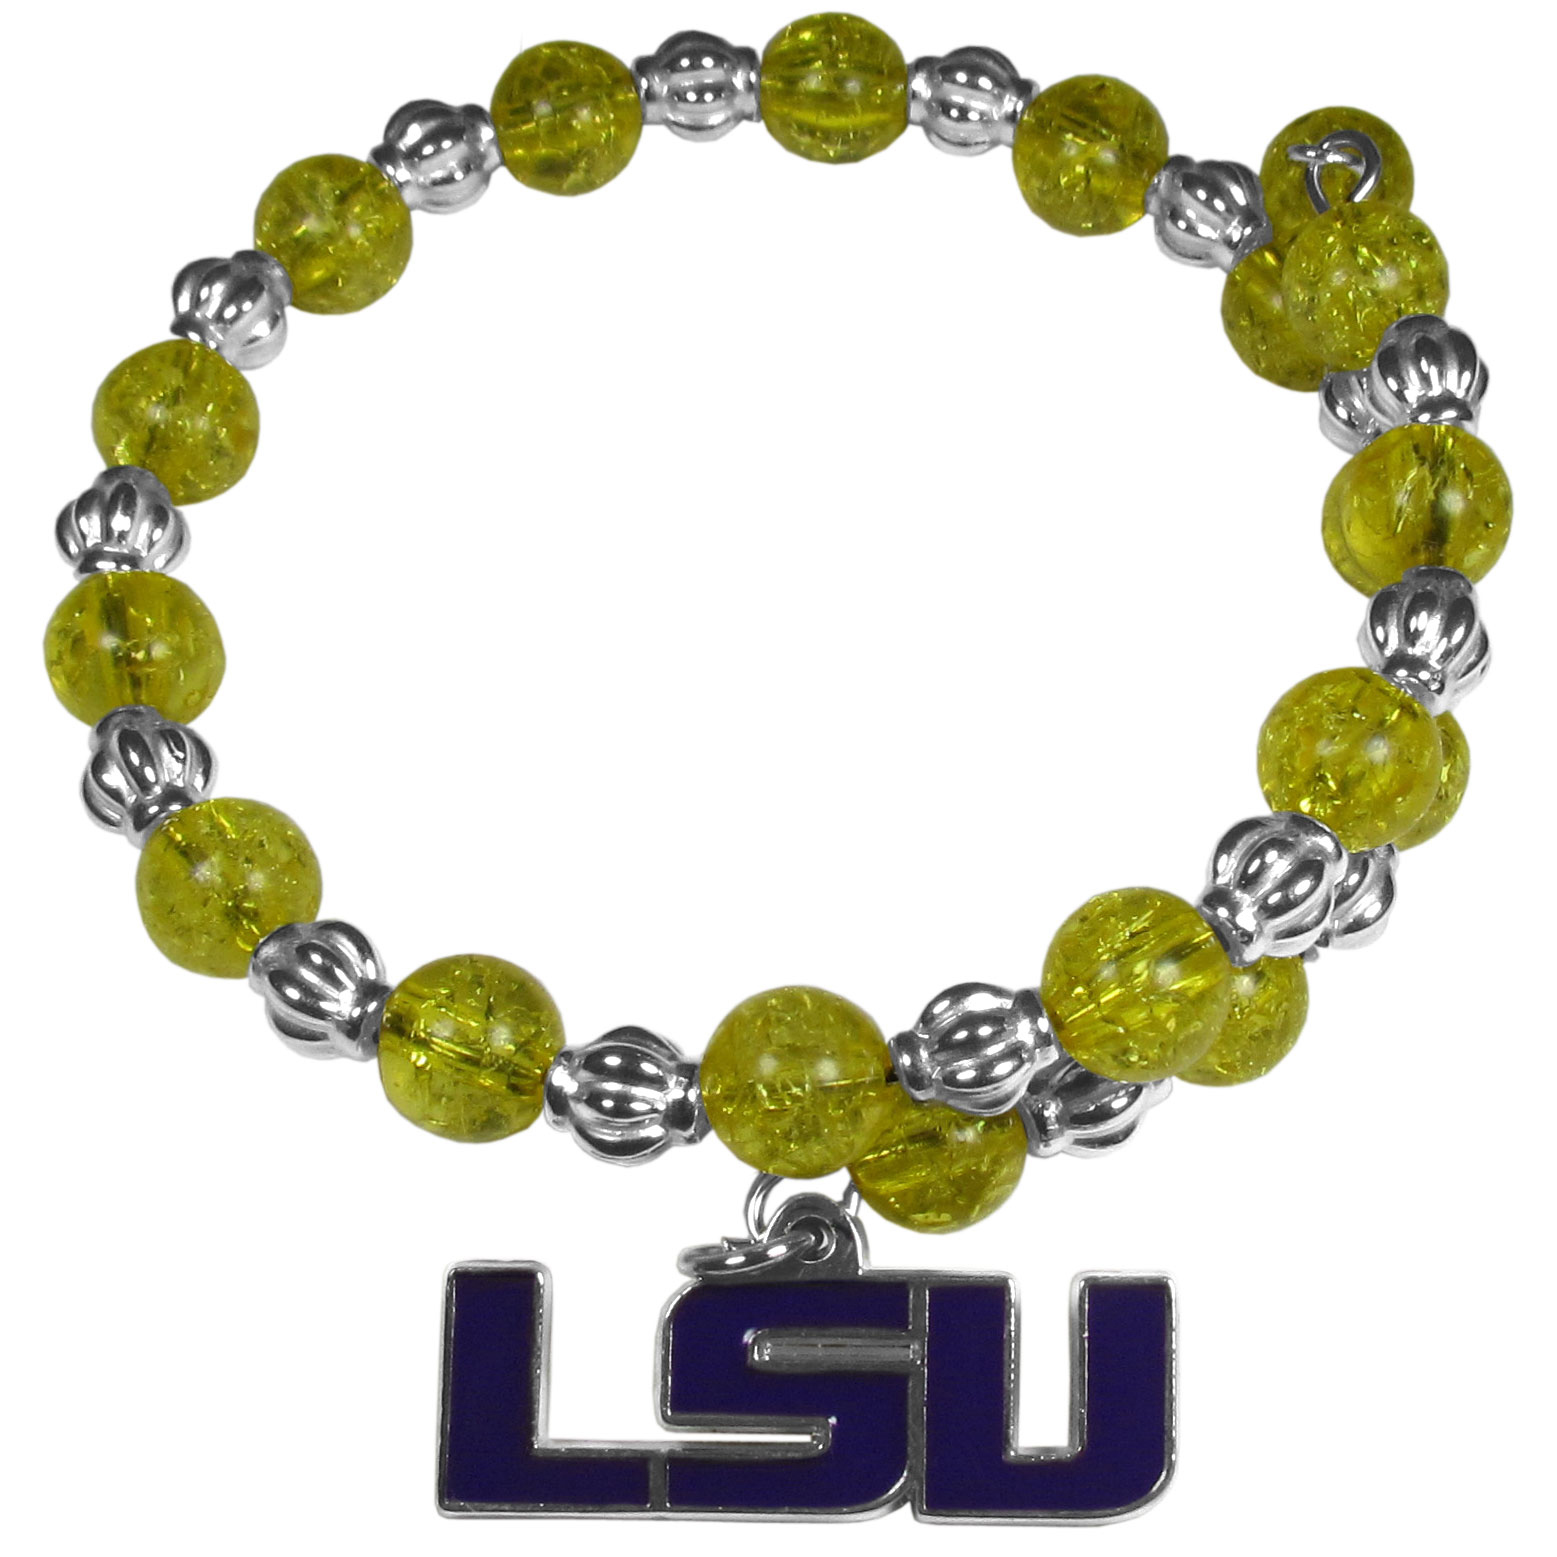 LSU Tigers Bead Memory Wire Bracelet - Our LSU Tigers memory wire bead bracelet is trendy way to show off your love of the game. The double wrap bracelet is completely covered in 7.5 mm crystals that are broken up with silvertoned beads creating a designer look with a sporty twist. The bracelet features a fully cast, metal team charm that has expertly enameled team colors. This fashion jewelry piece is a must-have for the die-hard fan that chic look that can dress up any outfit.